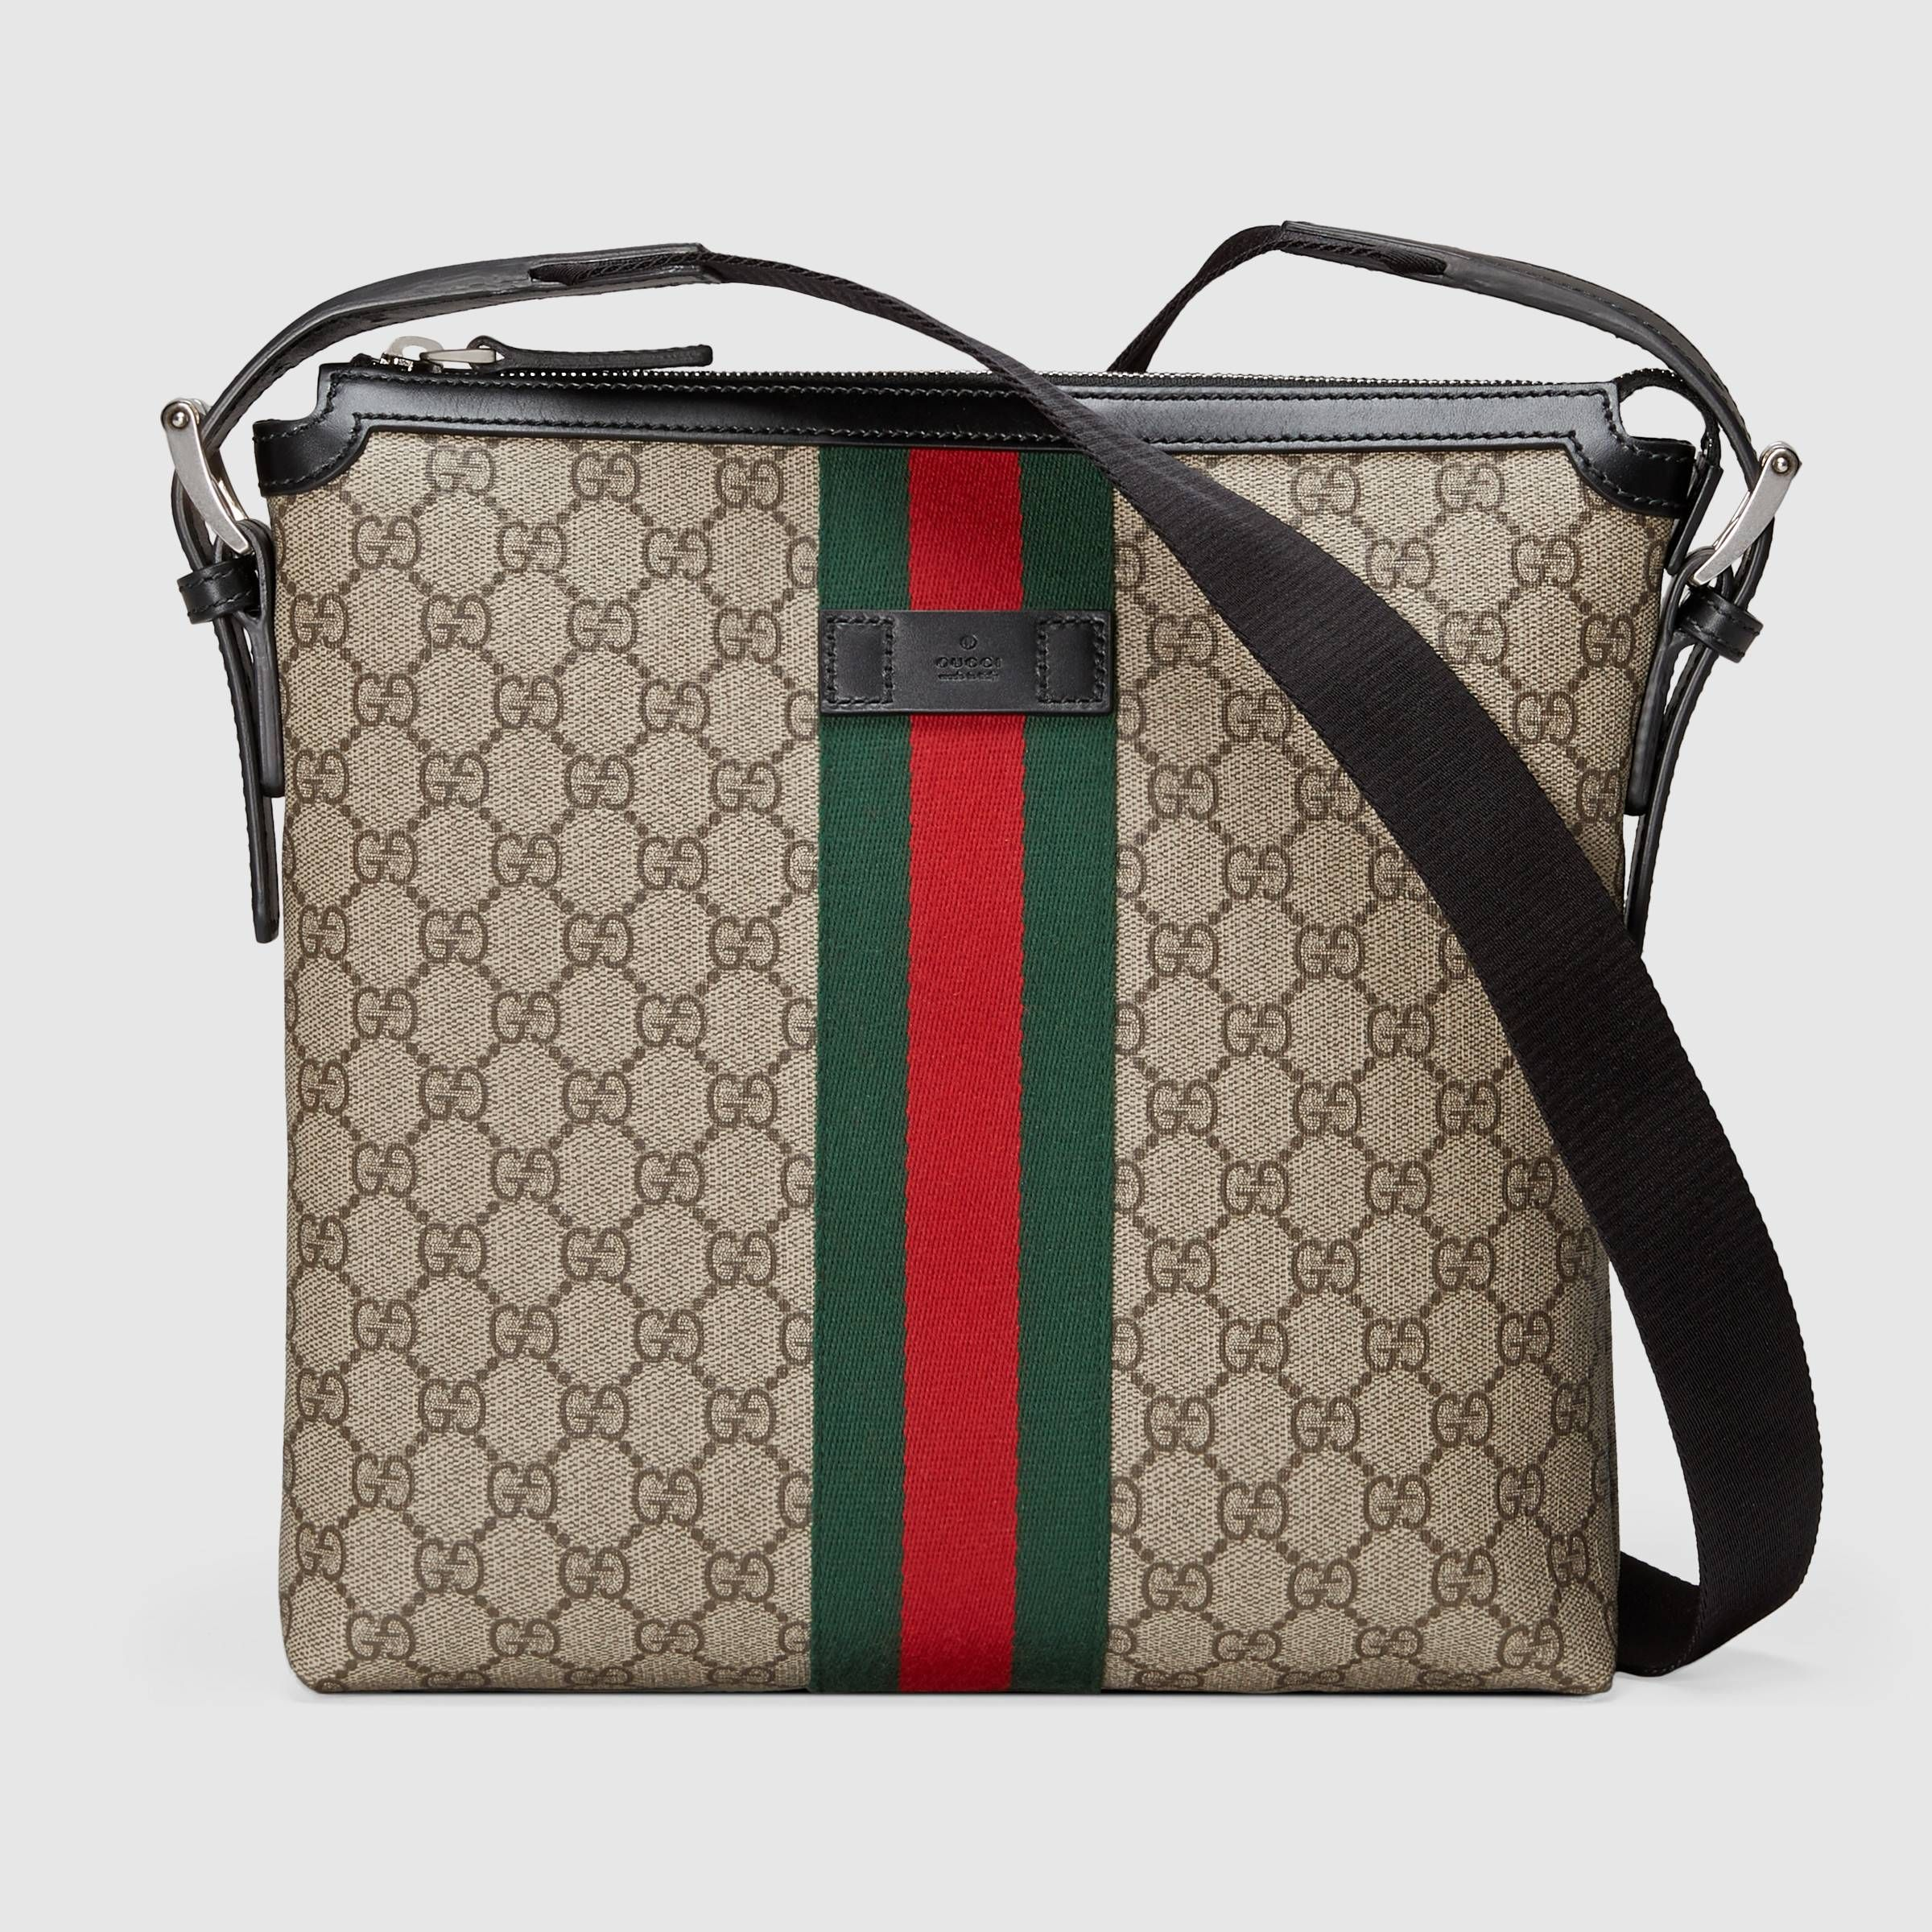 6877c9c5a3b4 Web GG Supreme messenger in Beige/ebony GG Supreme canvas, a material with  low environmental impact, with black leather trims | Gucci Men's Messenger  Bags